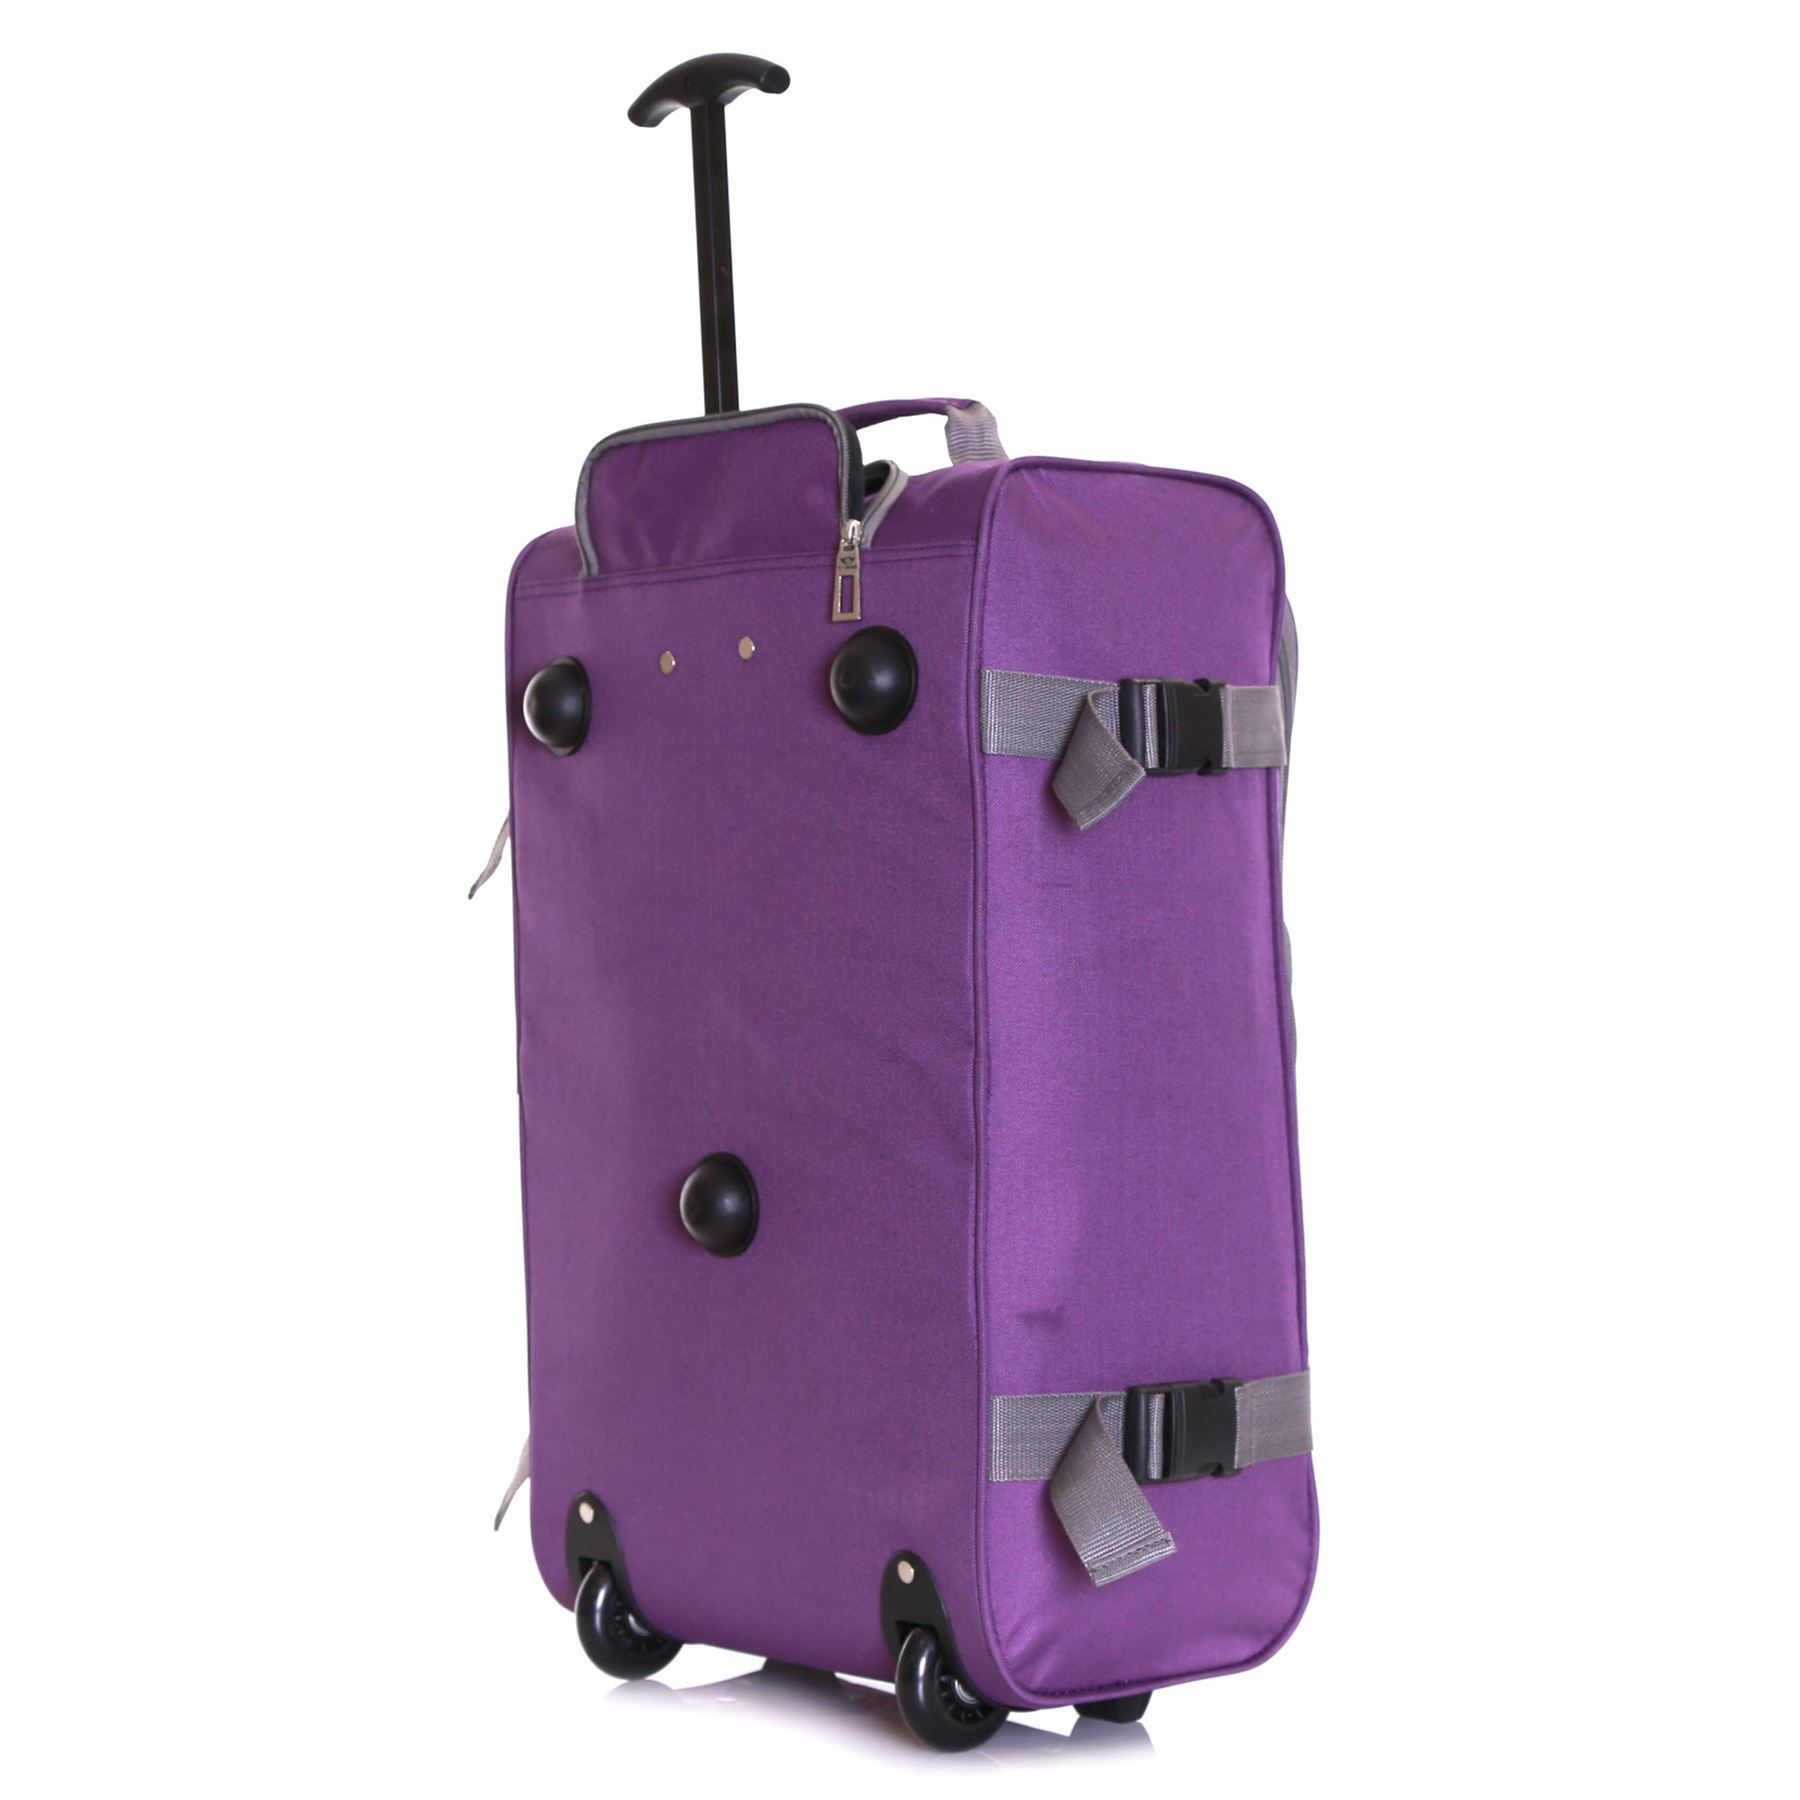 Ryanair-Easyjet-Set-of-2-Cabin-Approved-Hand-Trolley-Suitcases-Luggage-Case-Bags thumbnail 21